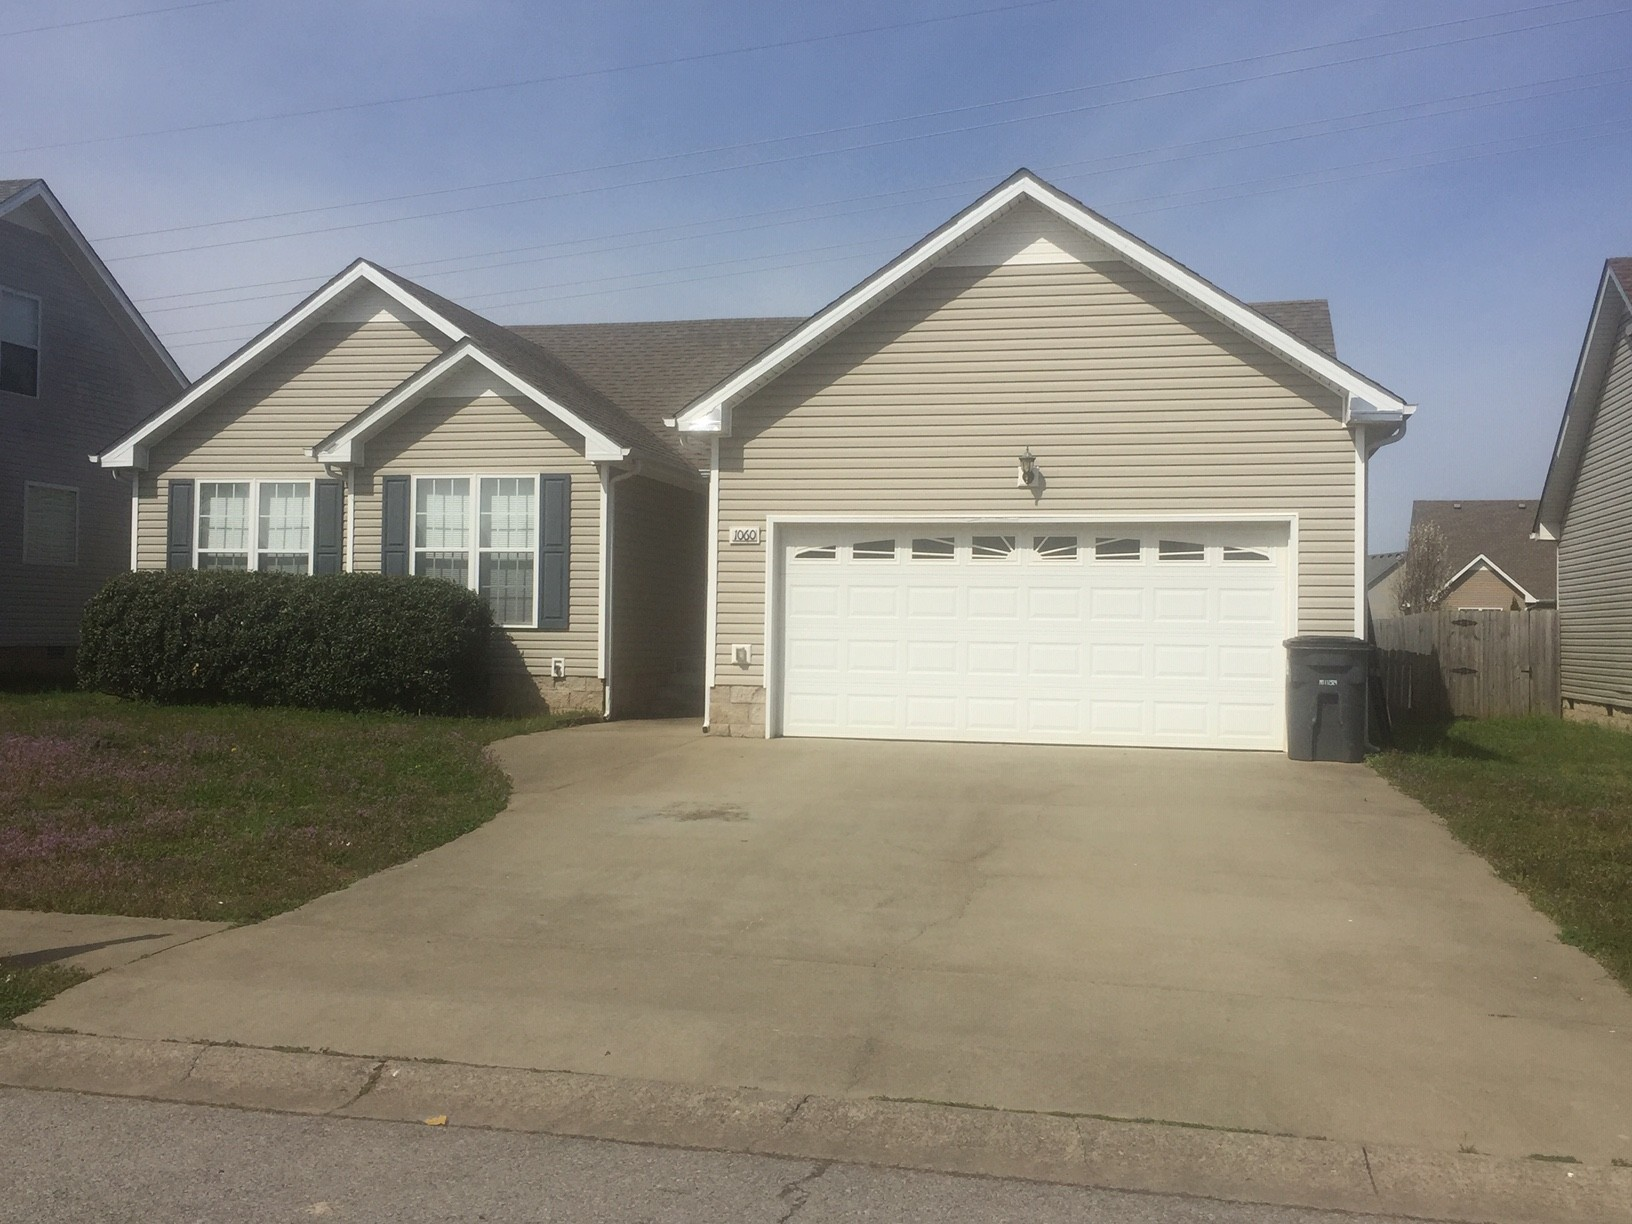 1060 Cindy Jo Ct Property Photo - Clarksville, TN real estate listing